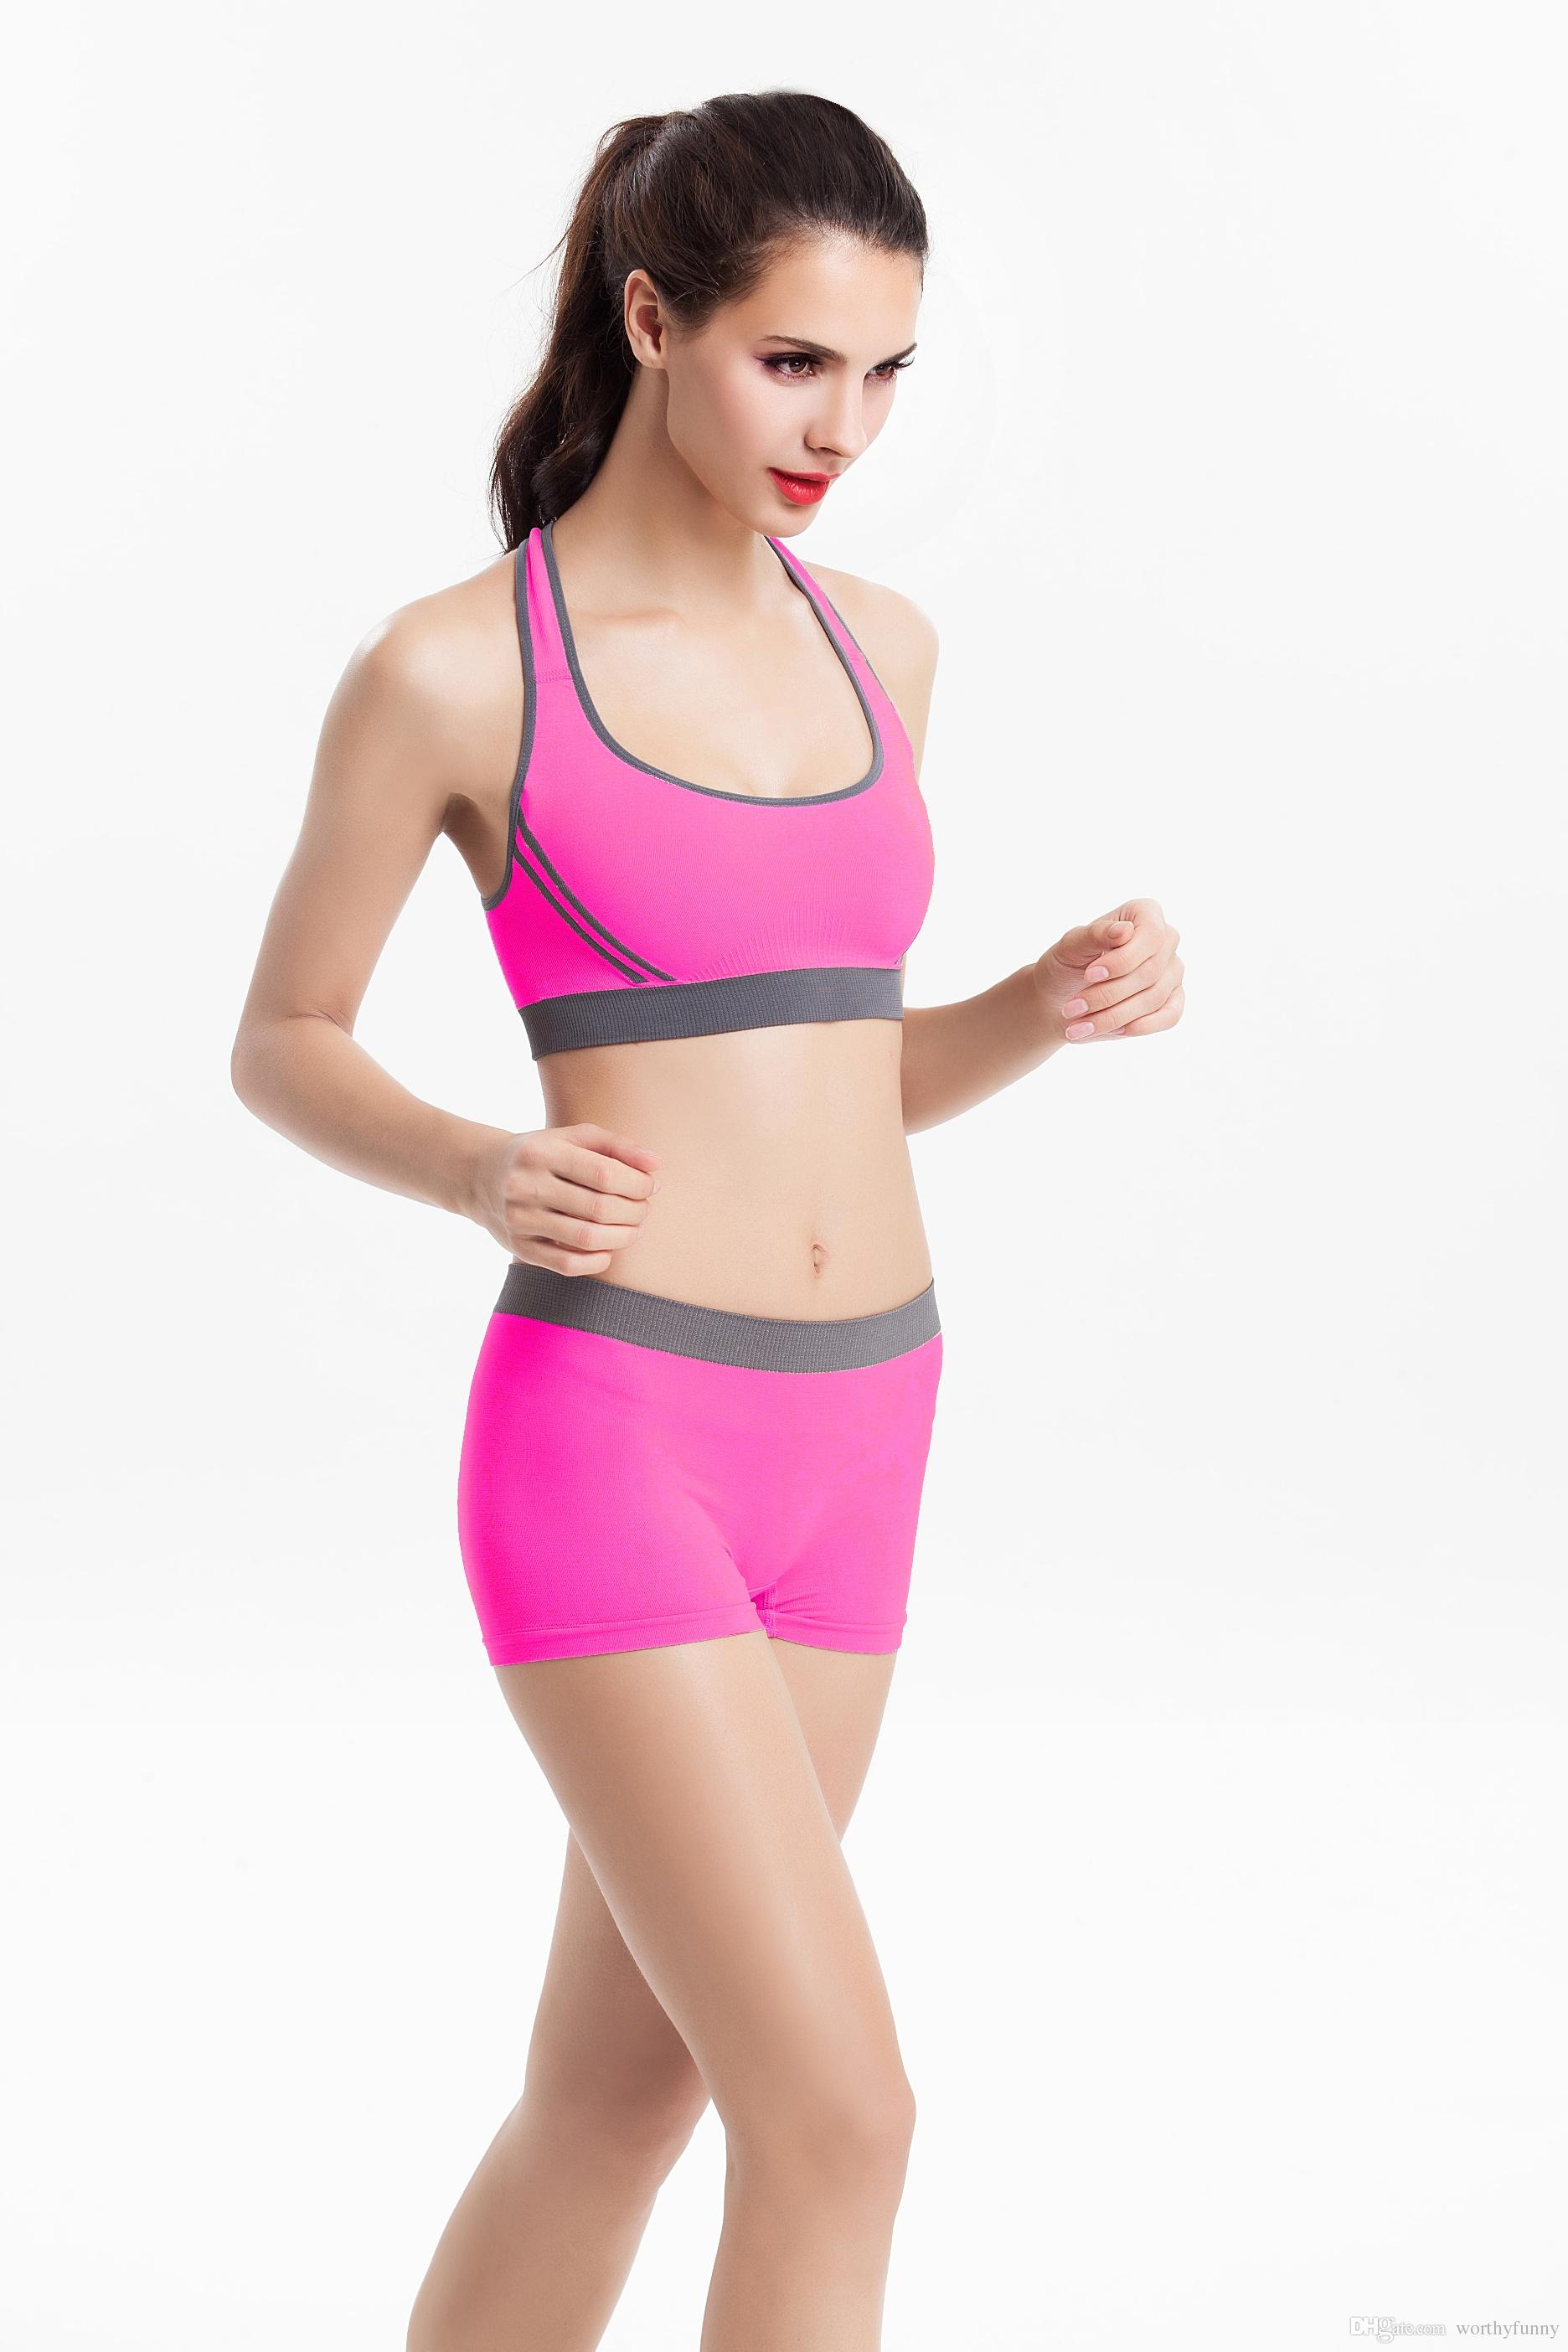 Women Sport Panties Suits Bra Top Set Suit Sportwear Sports Bra And  Underwear Yoga Set Fitness KL 05 UK 2019 From Worthyfunny f2ccc0a878